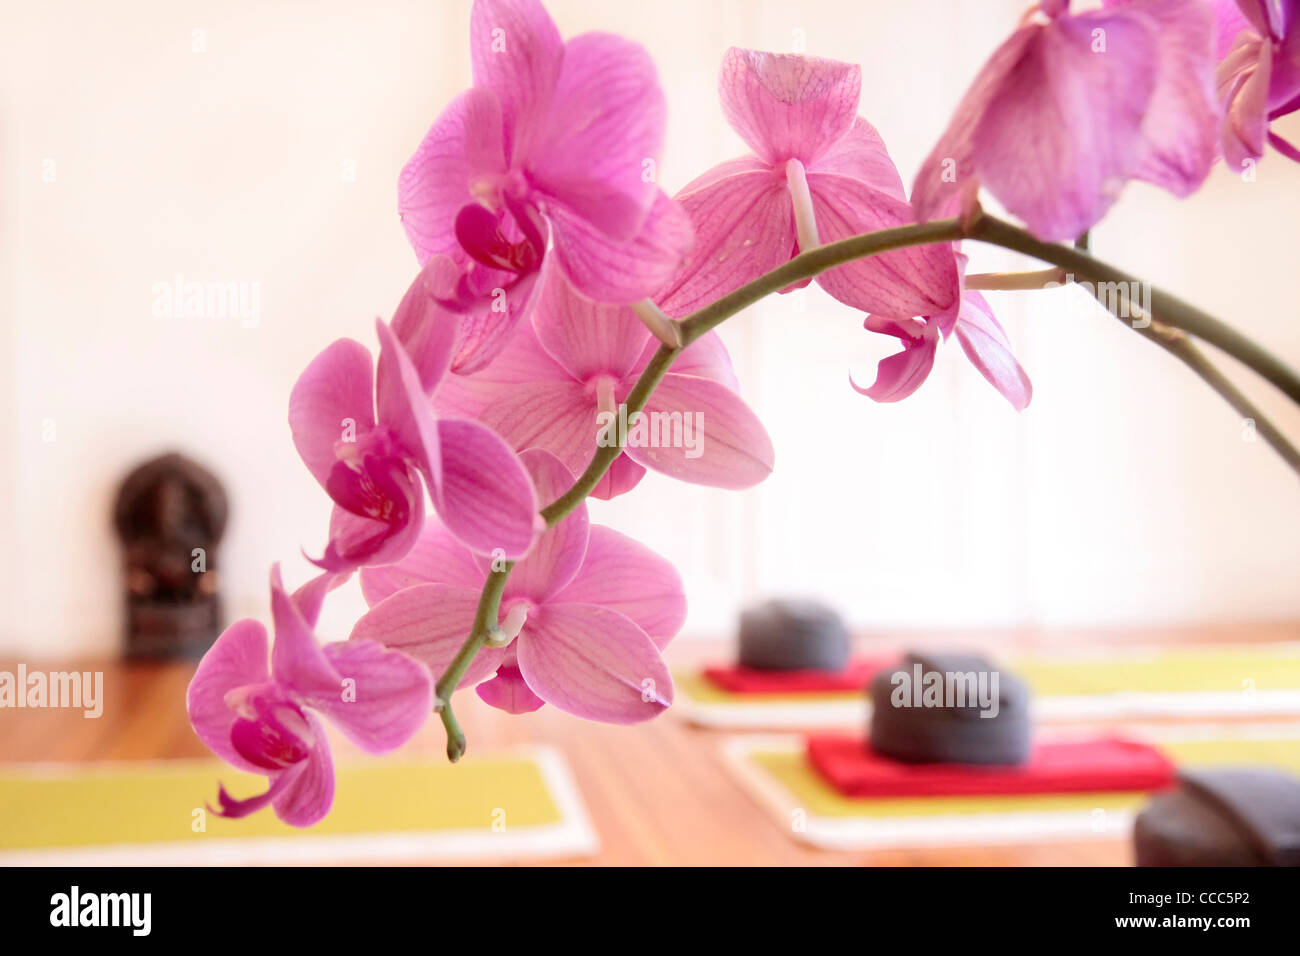 Yoga pillows and pink orchid decoration in a yoga room - Stock Image